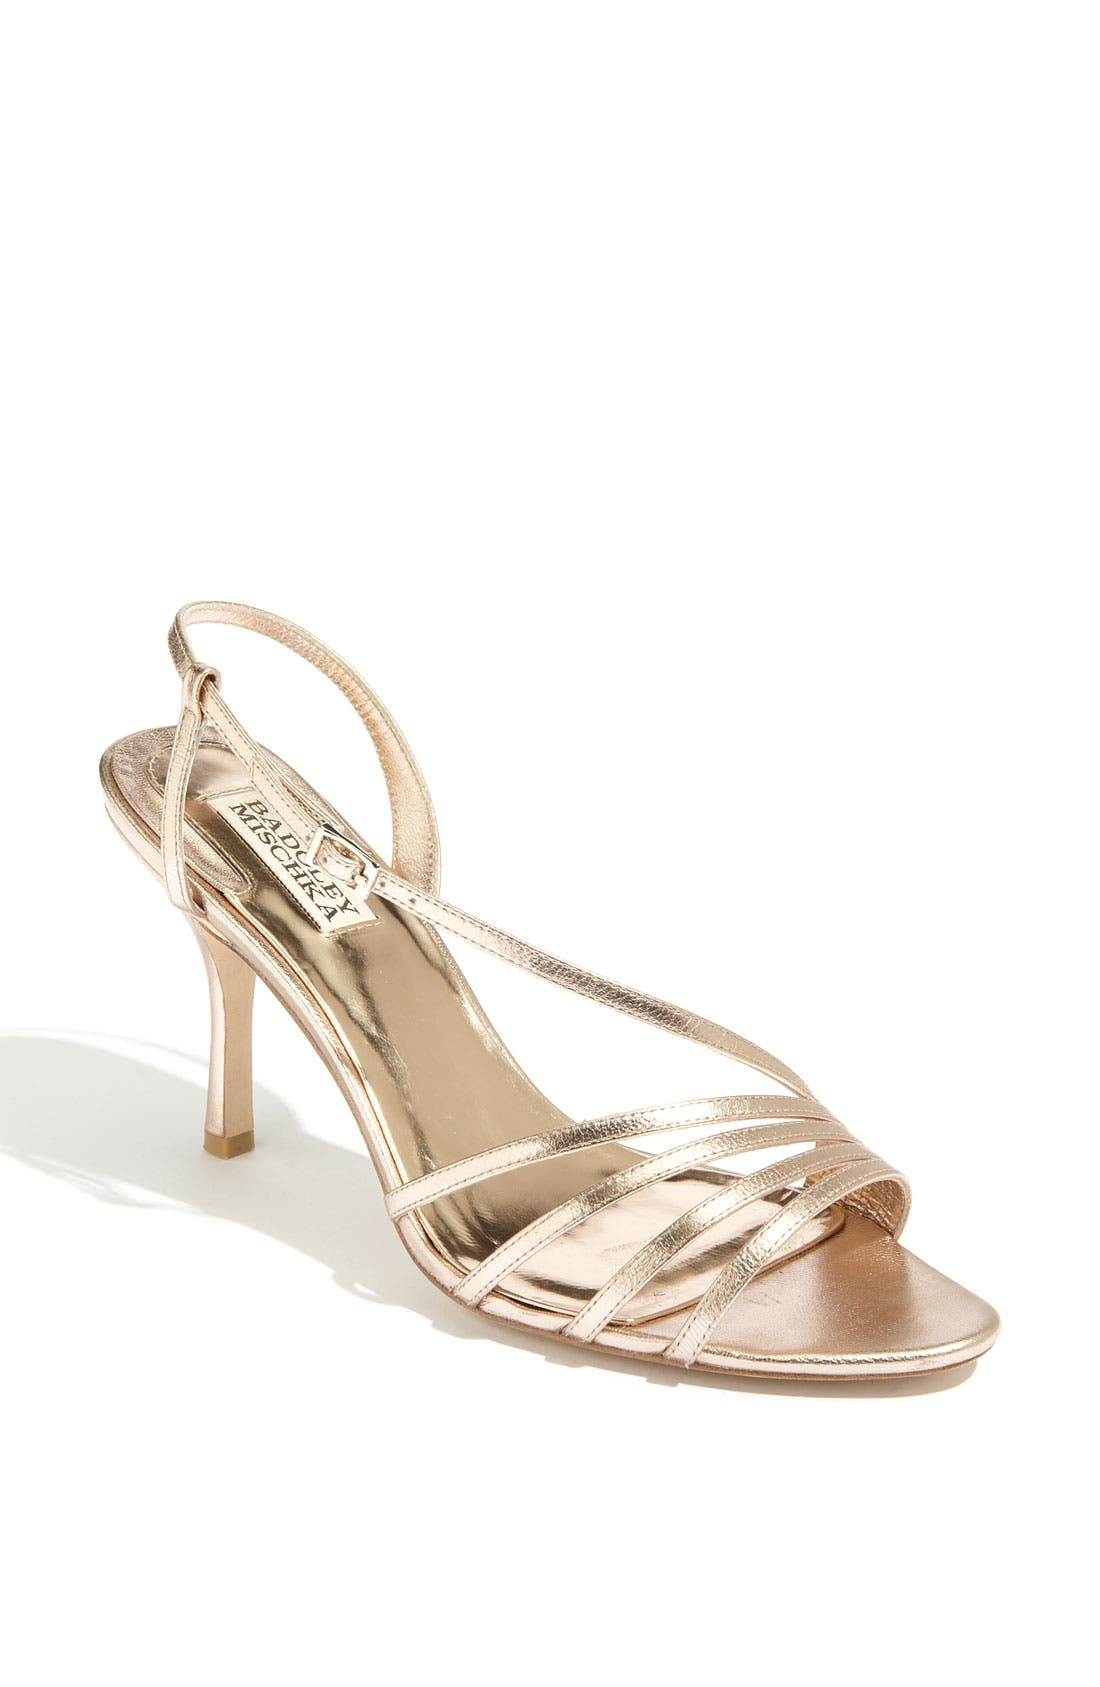 Alternate Image 1 Selected - Badgley Mischka 'Guinevere' Sandal